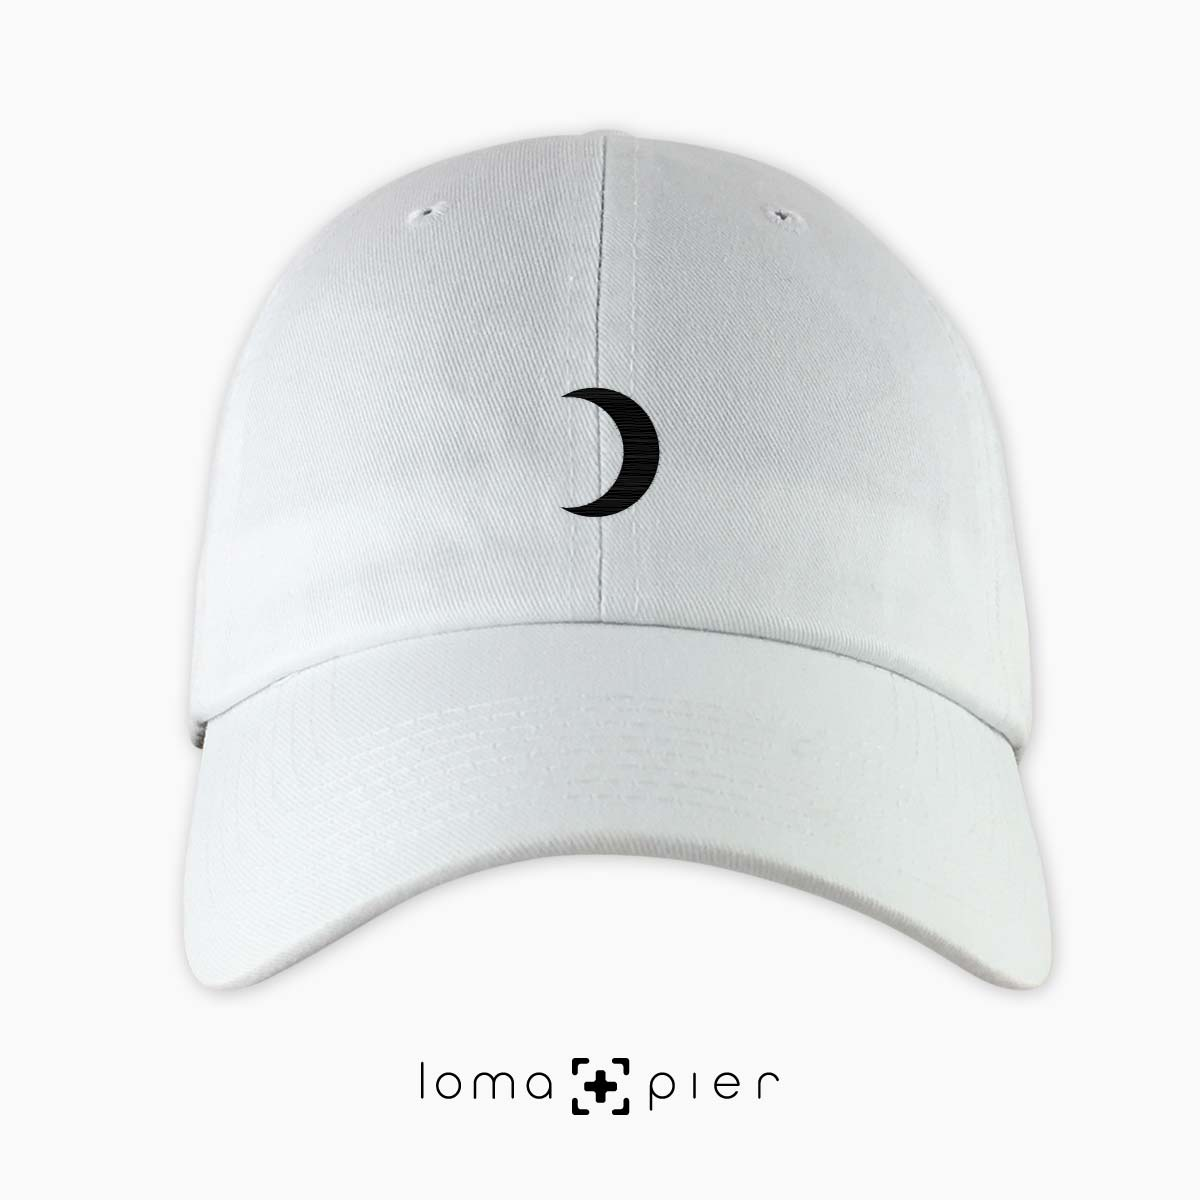 bf62ace2152fb MOON icon embroidered on a white dad hat by loma+pier hat store made in